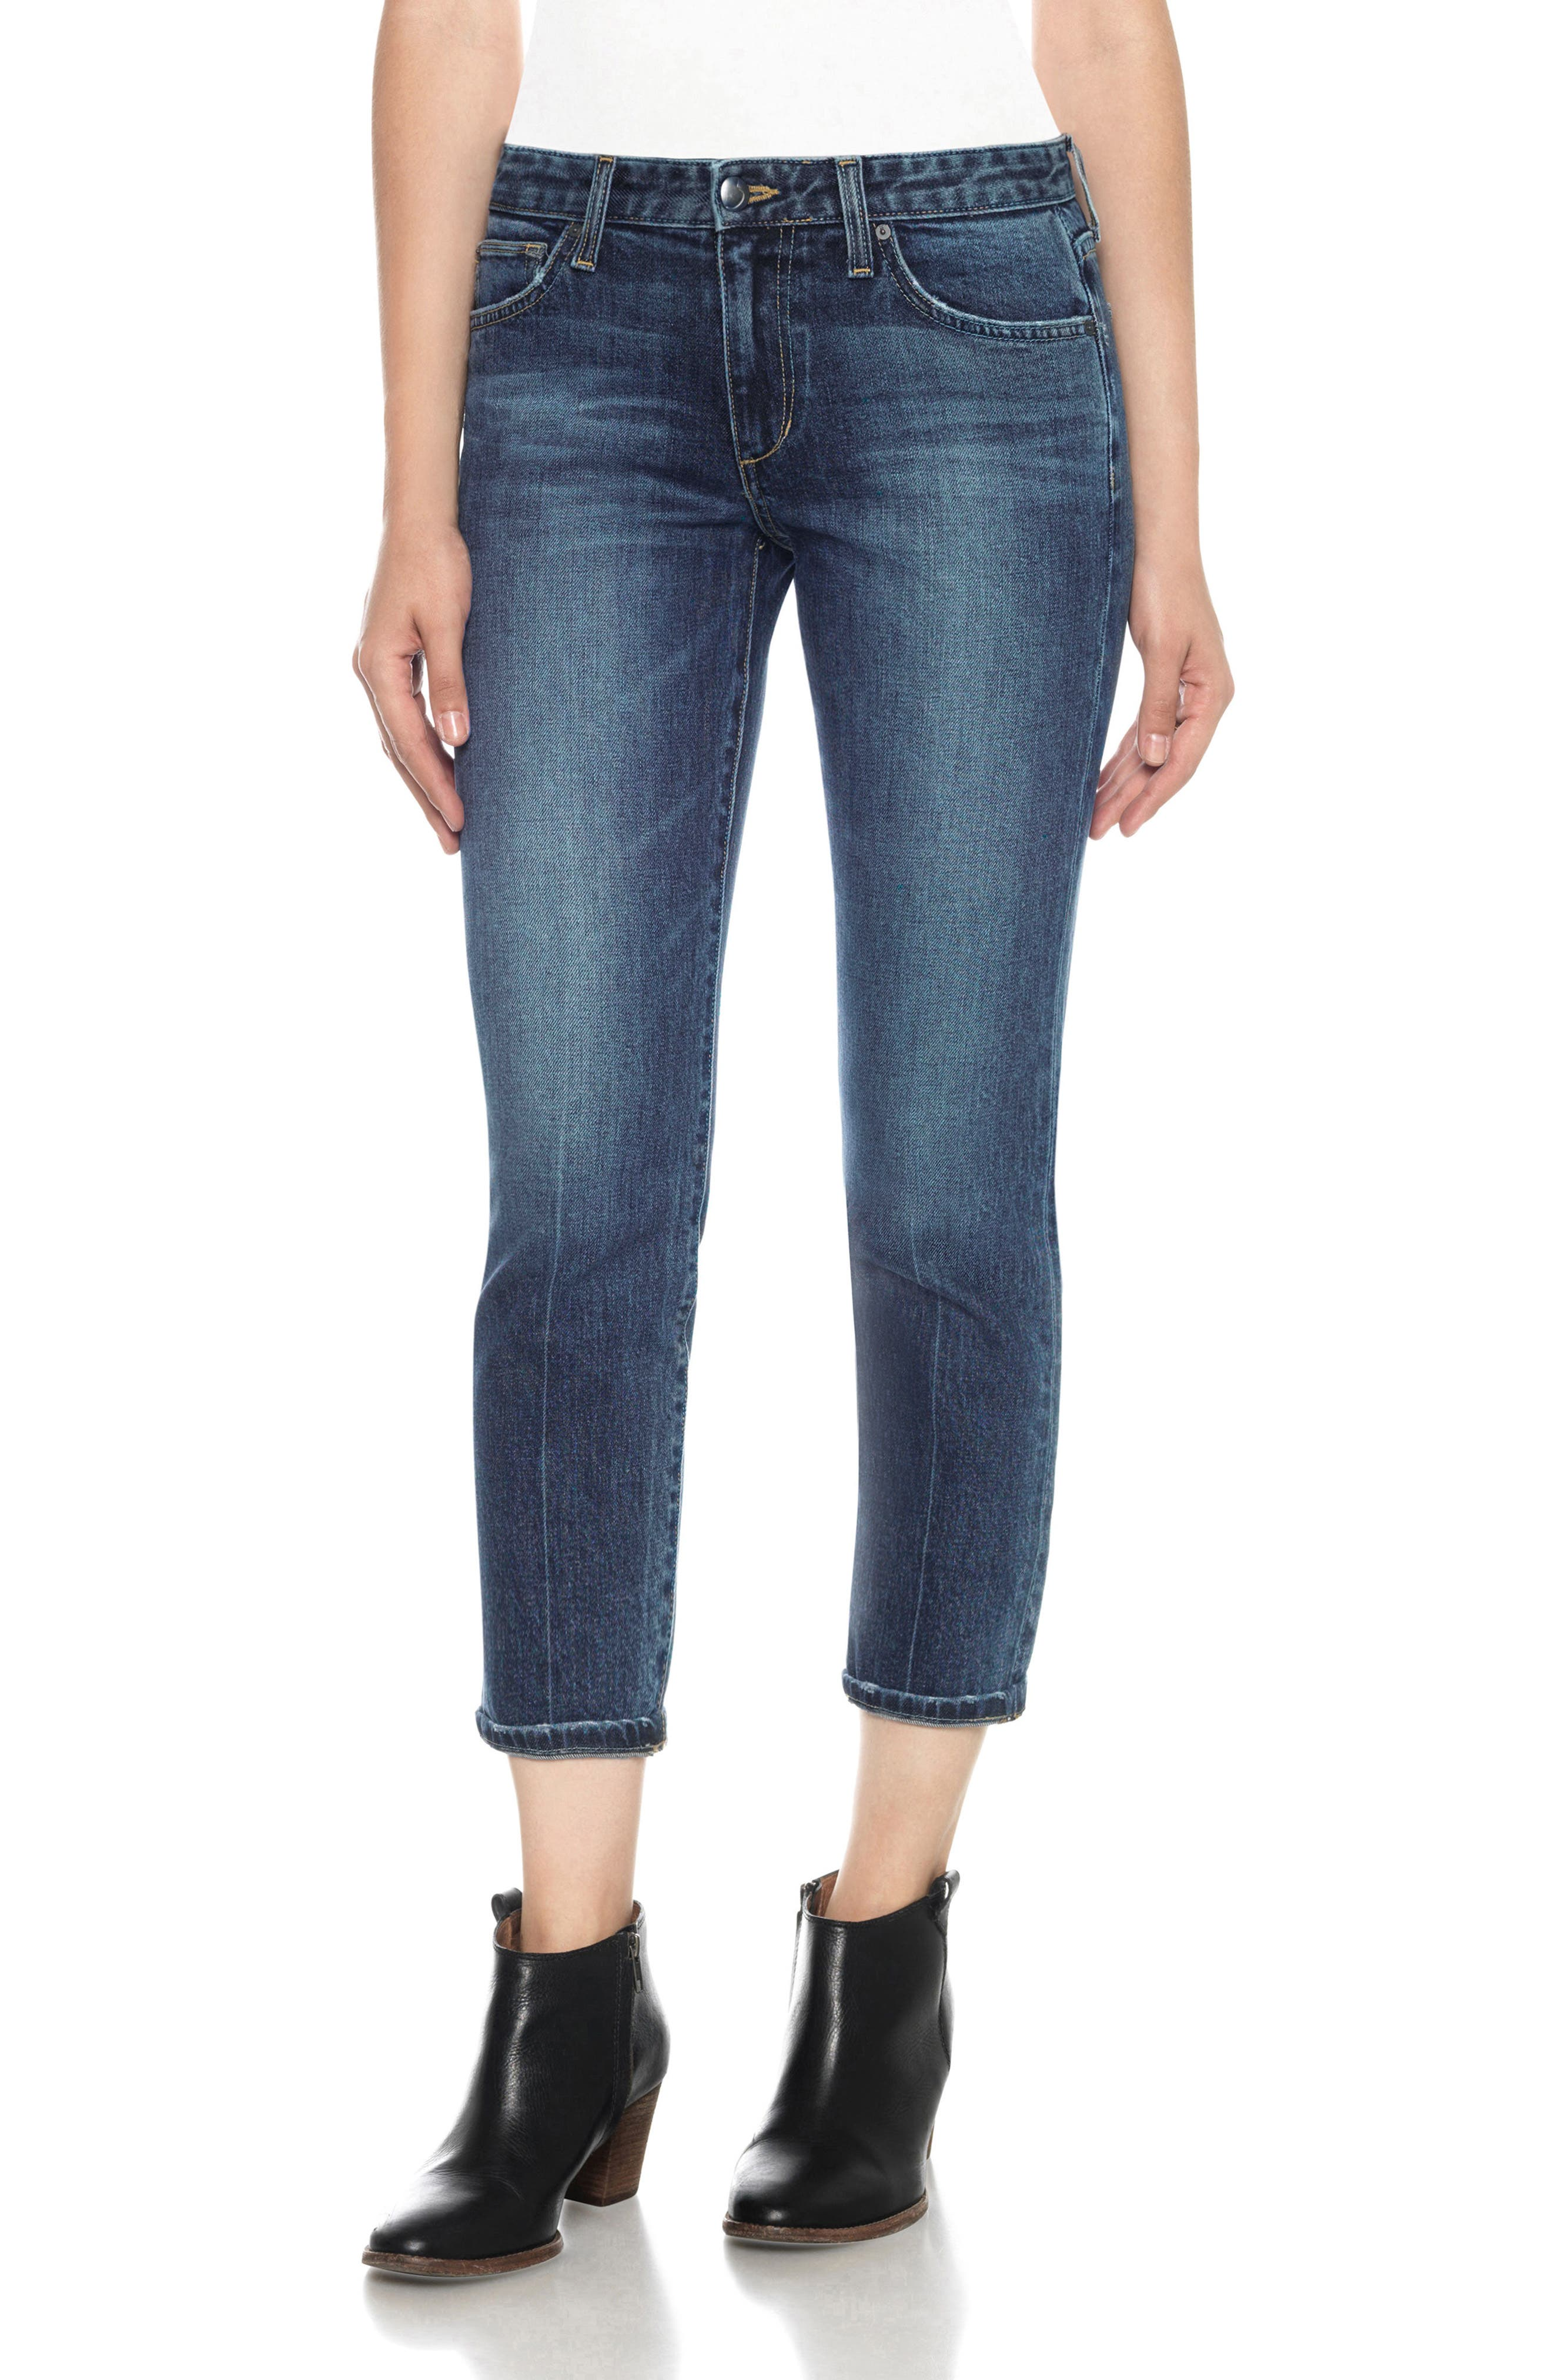 Smith Ankle Skinny Jeans,                         Main,                         color, 404